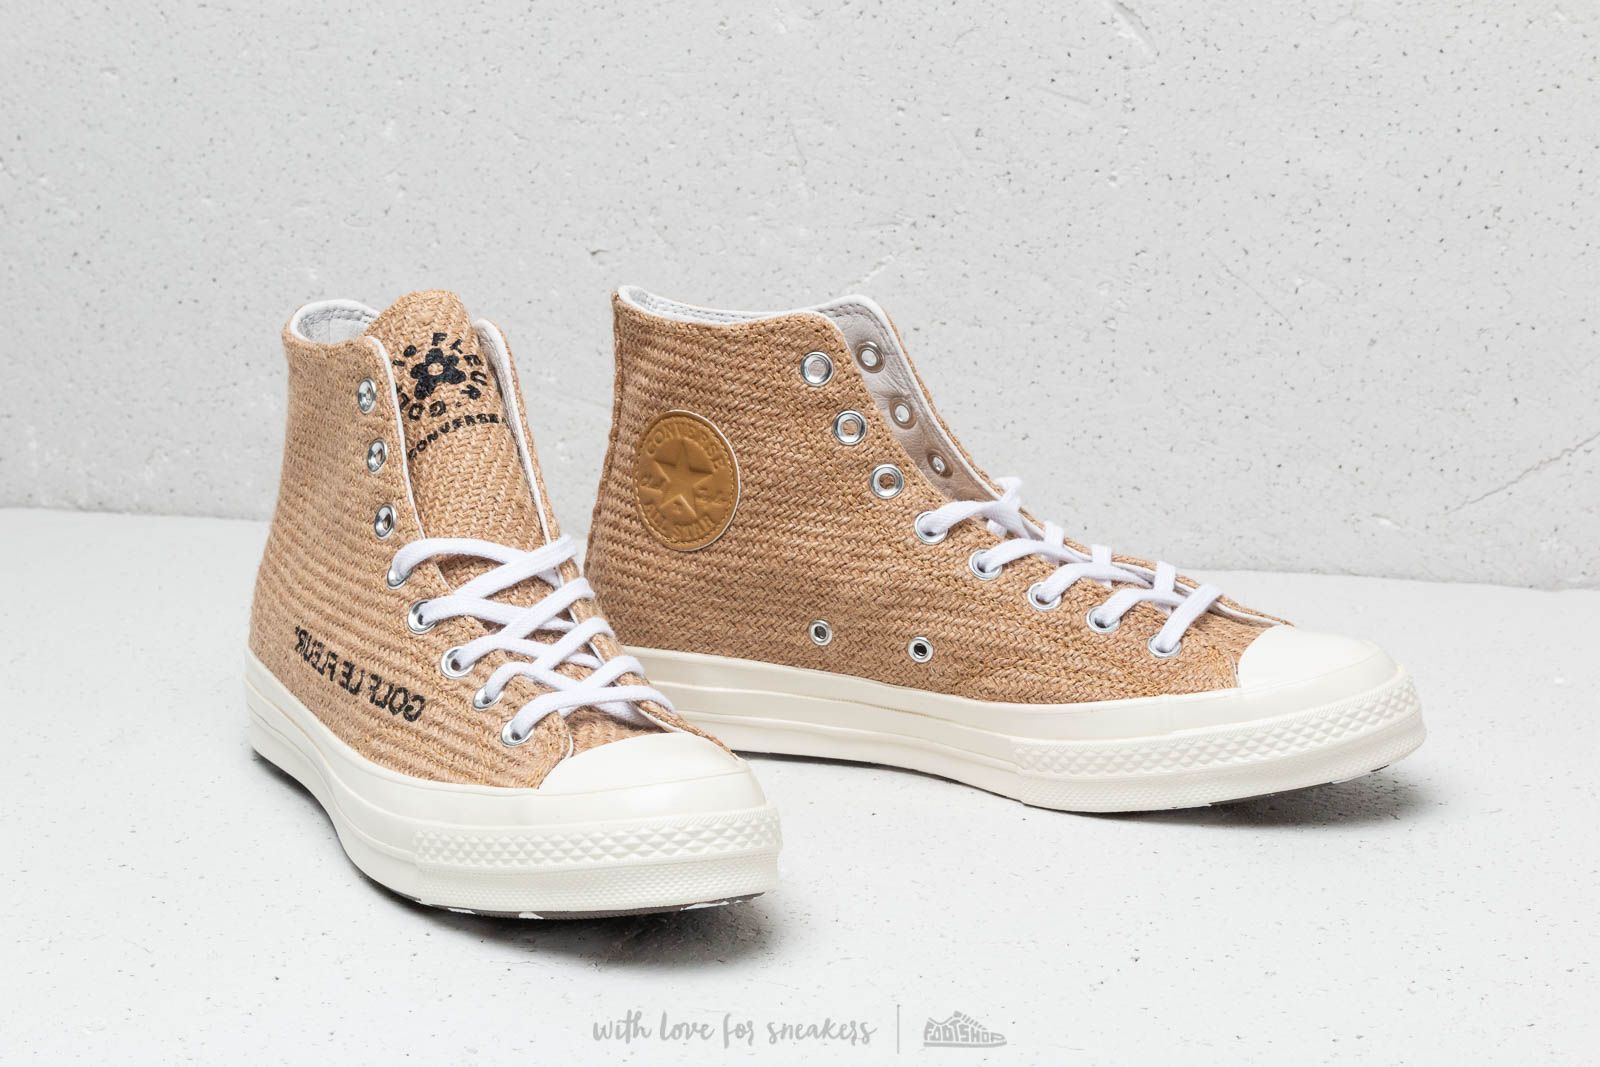 Converse X Golf Le Fleur Chuck Taylor All Star 70 Hi Curry Egret Black